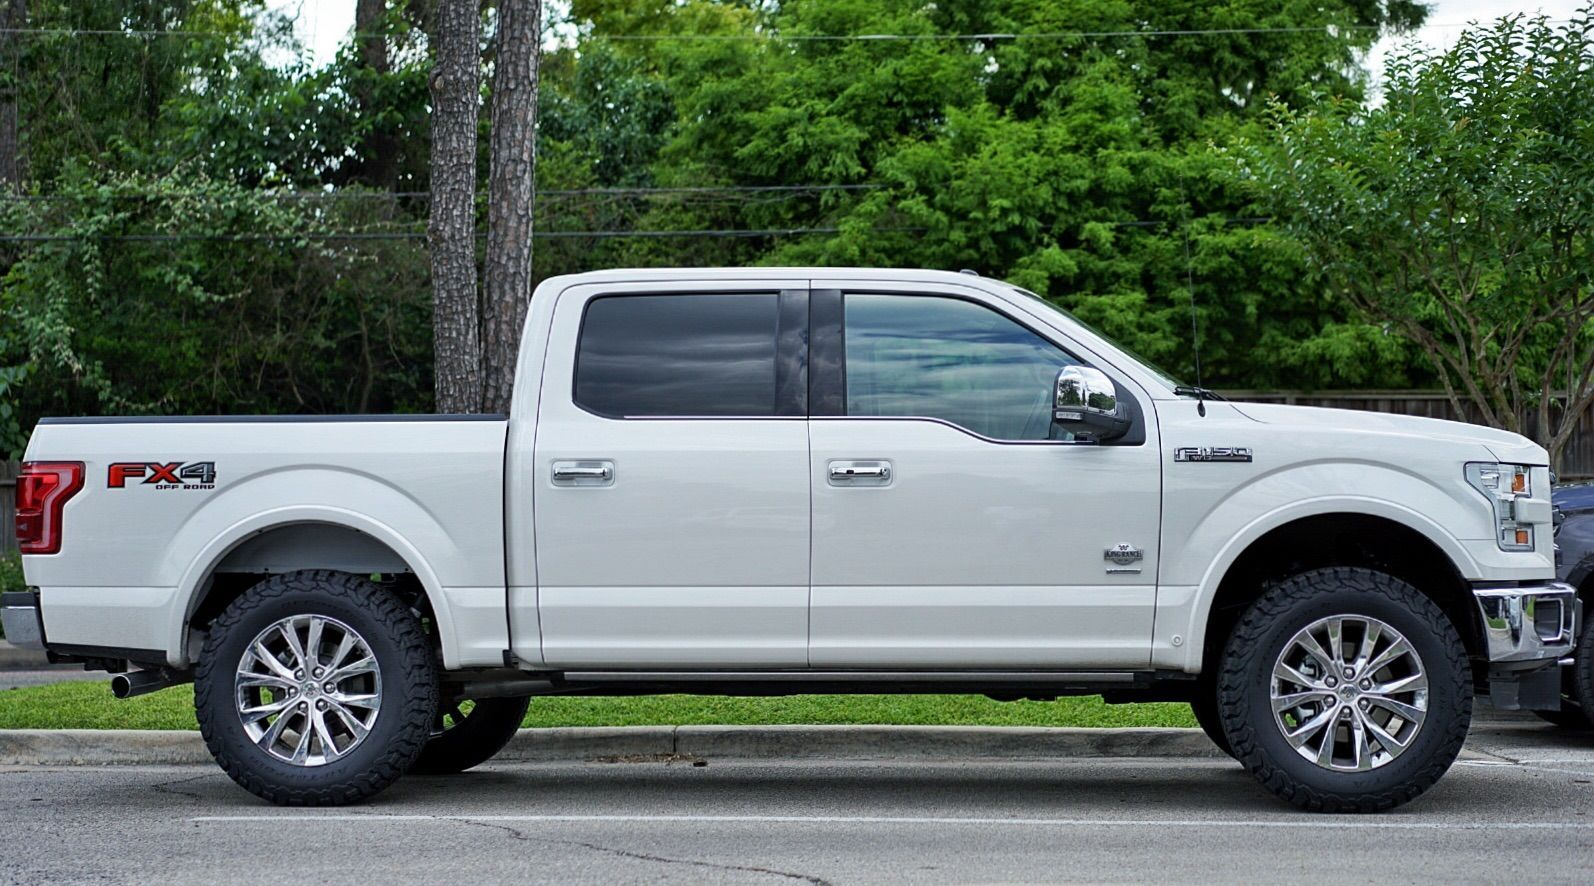 My 2 5 Leveled W X2f 35s King Ranch Page 5 Ford F150 Forum Community Of Ford Truck Fans Truck Accessories Ford Ford Trucks Diesel Trucks Ford